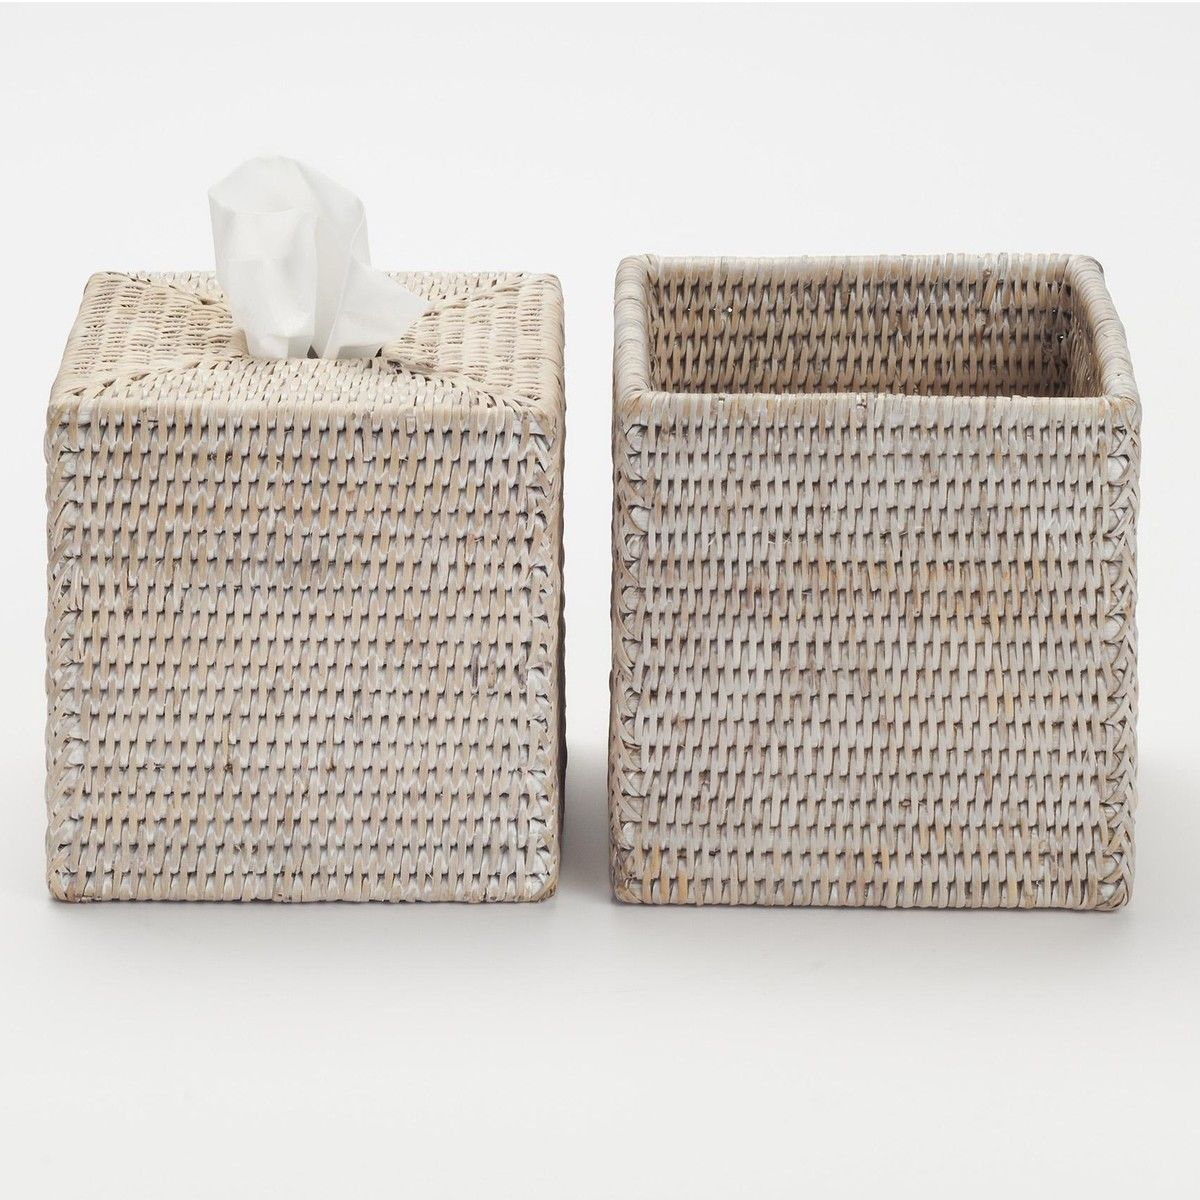 Basket KBQ Rattan Tissue Box